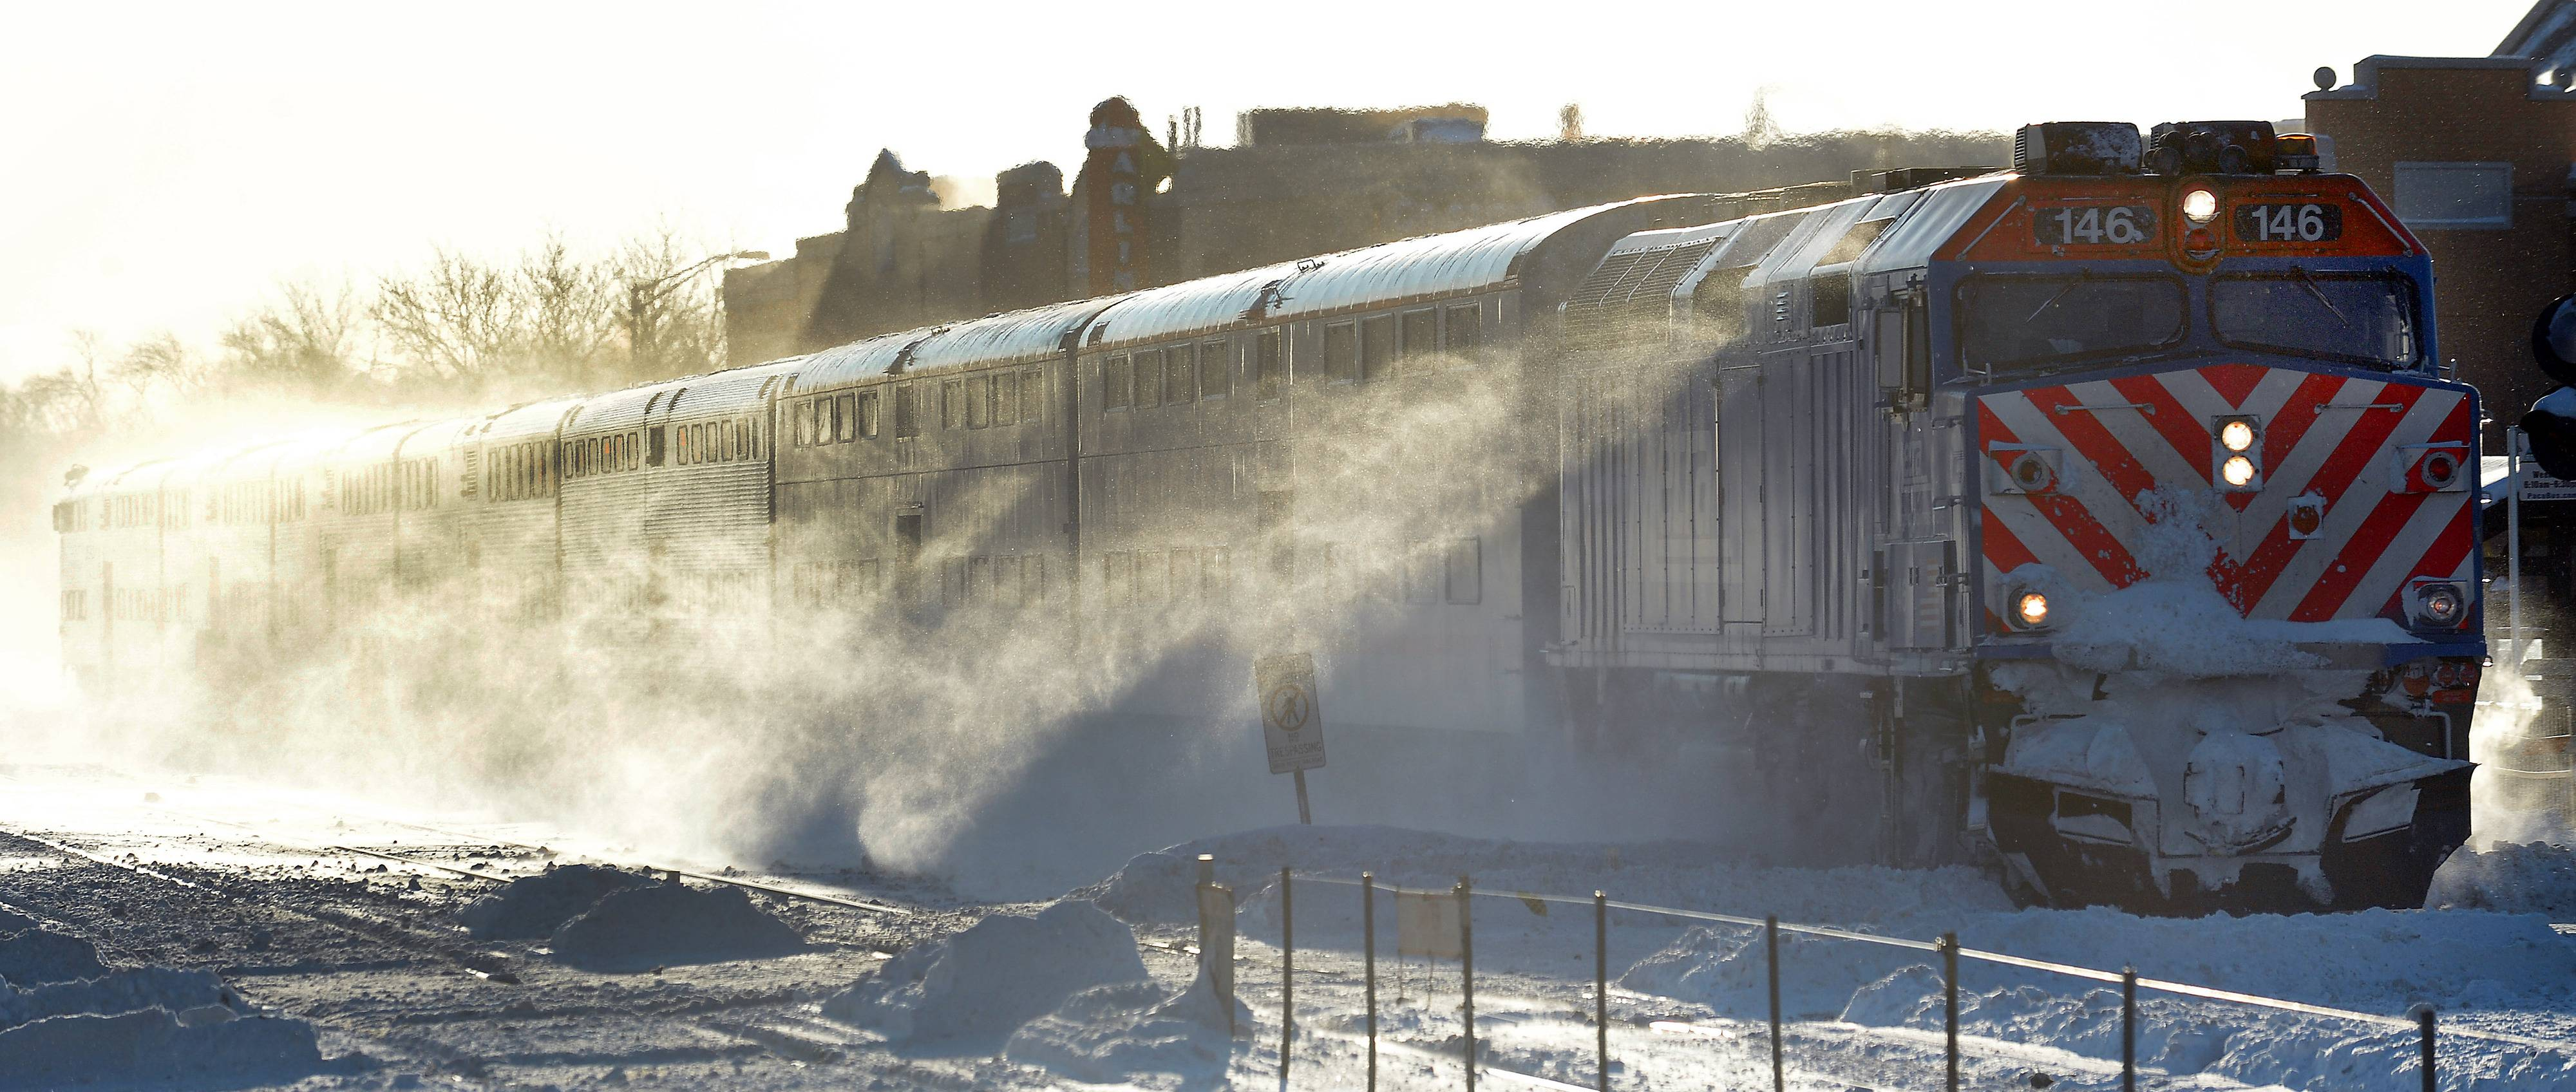 A Metra train plows past the Arlington Heights station in subzero temperatures last month.